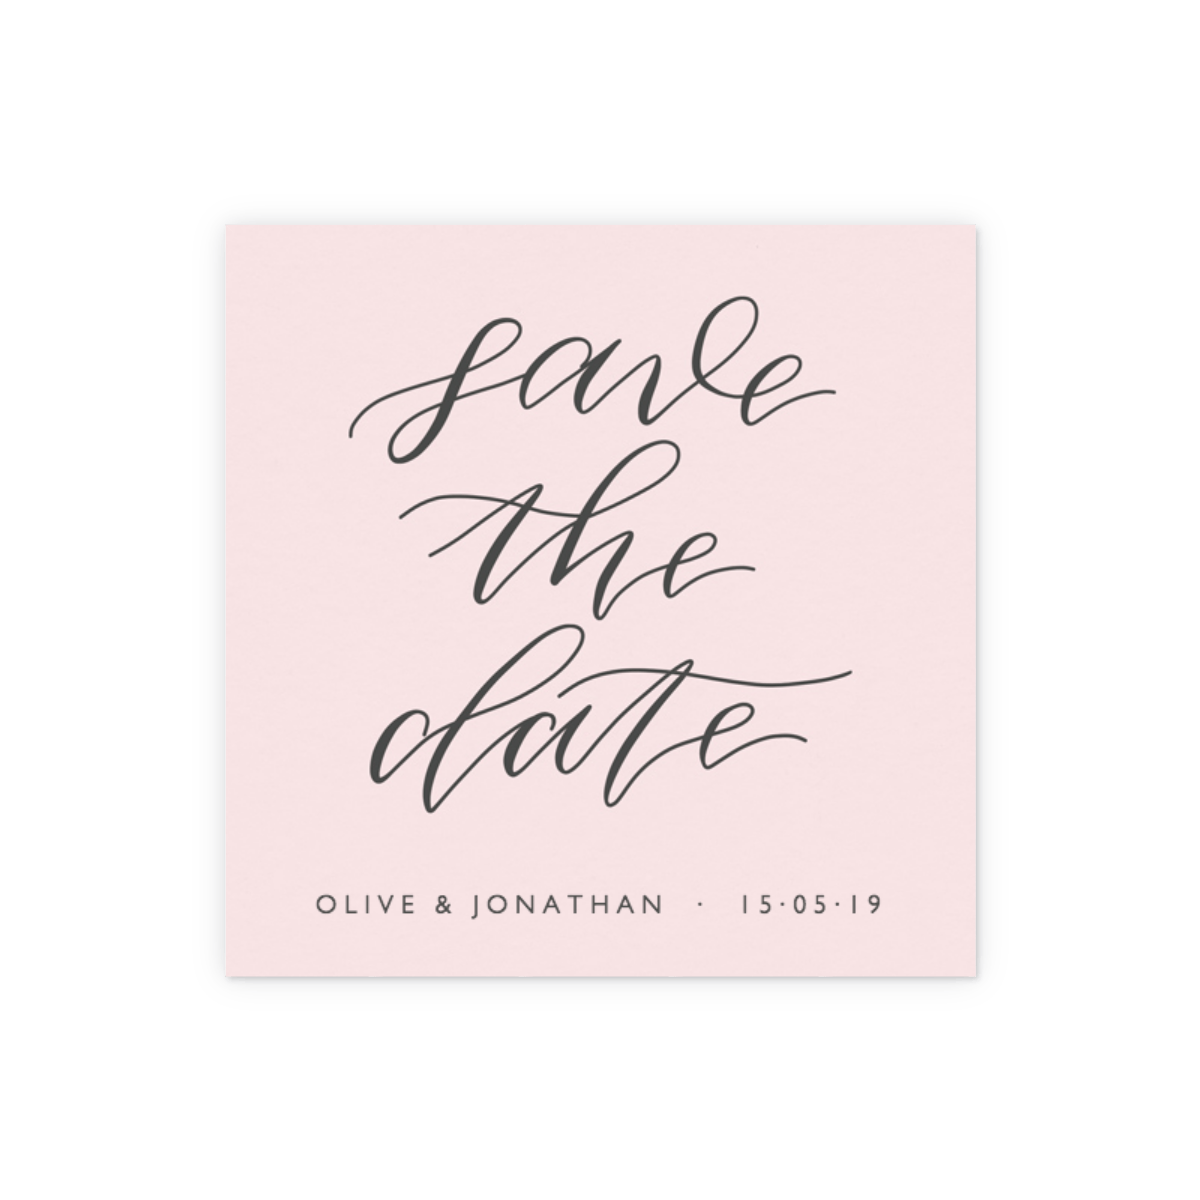 Https%3a%2f%2fwww.papier.com%2fproduct image%2f7336%2f11%2fsave the date pink calligraphy 1780 avant 1534323222.png?ixlib=rb 1.1